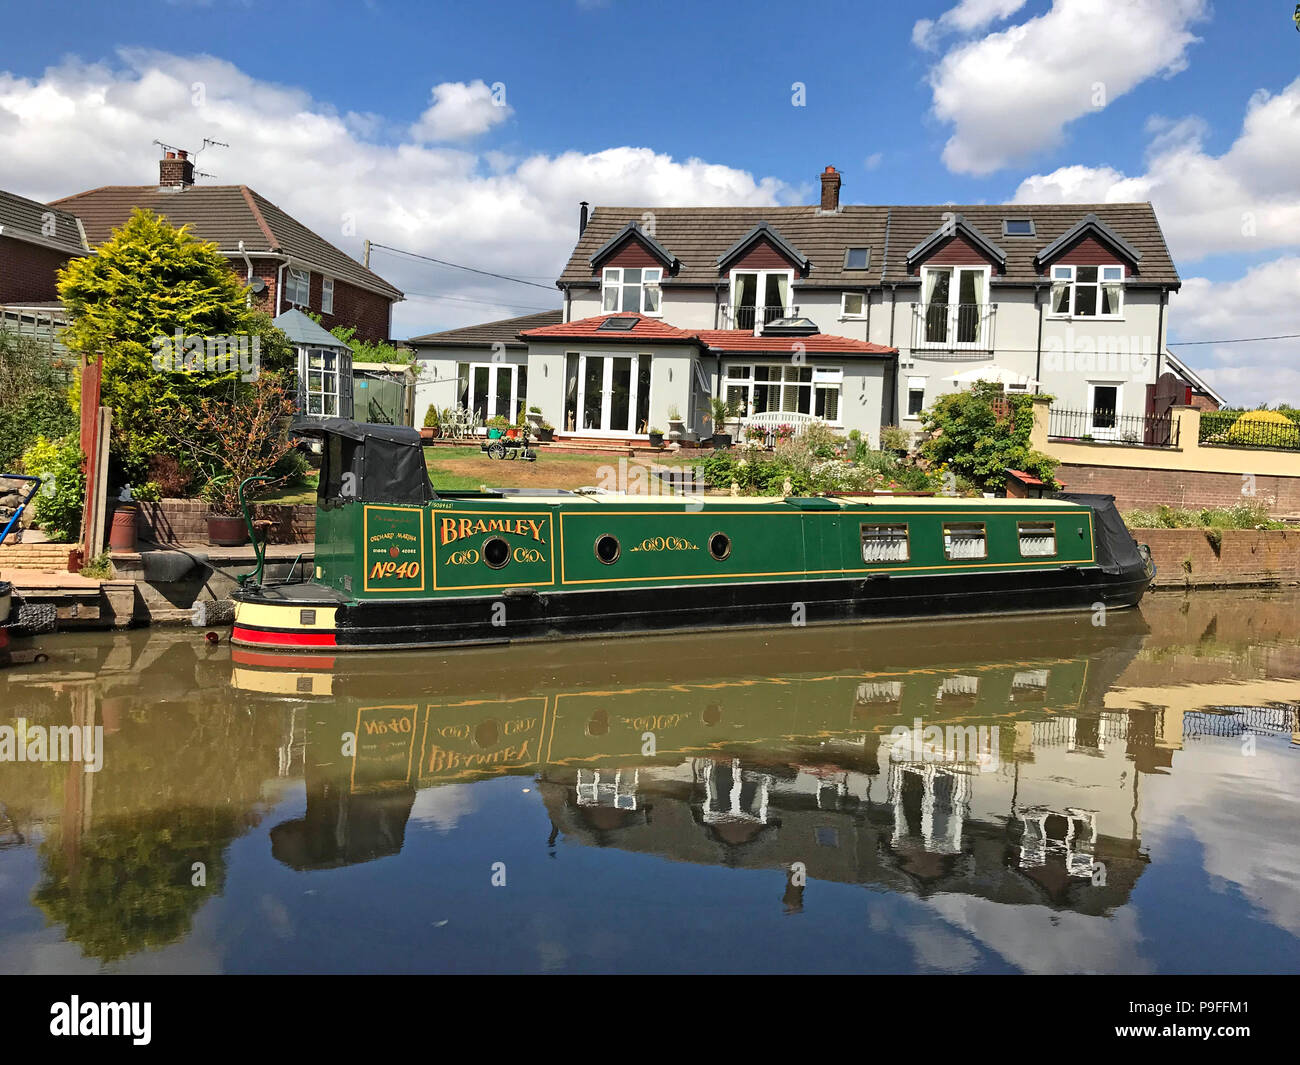 GoTonySmith,@HotpixUK,North West England,UK - Narrowboat,canals,Cheshire,Ring,UK,water,summer,tourism,tourist,Canal Anderton,Canal Northwich,tow path,towpath,No40,No 40,Bramley,Green,Green Barge,Green Narrowboat,clouds,cloud,reflection,reflections,painting,art,Anderton Lift,canal art,painted,painted canal boat,The Stanley Arms Anderton,Stanley Arms Anderton,Stanley Arms,pub,Anderton